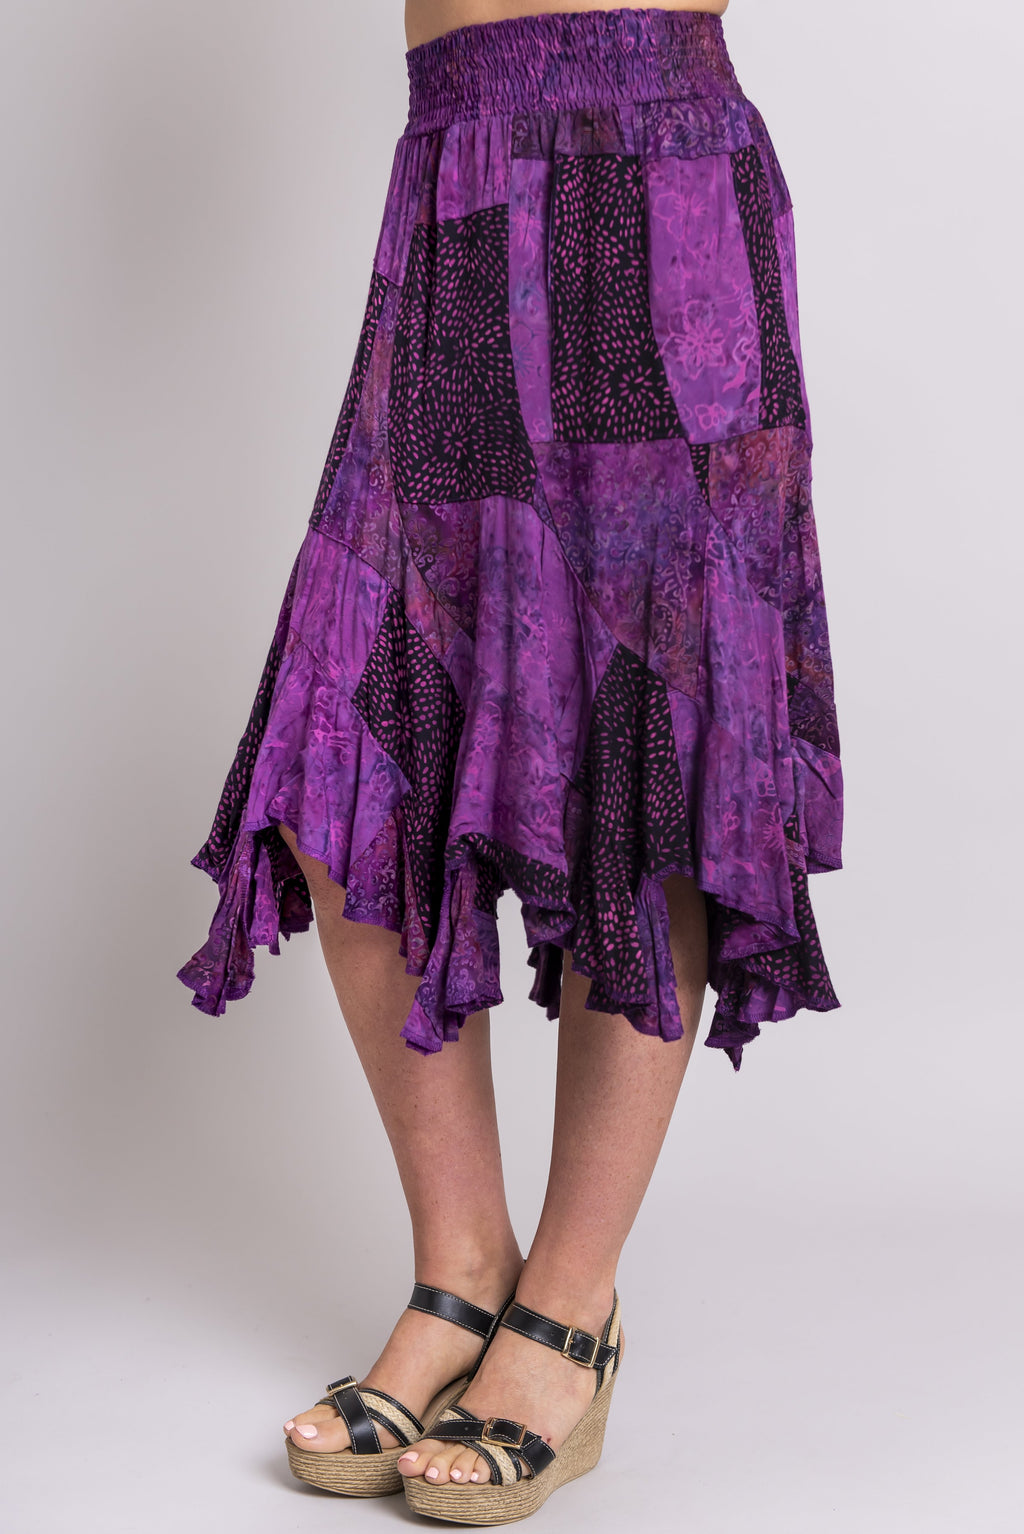 Patchwork Skirt, Purple Rain, Batik Art